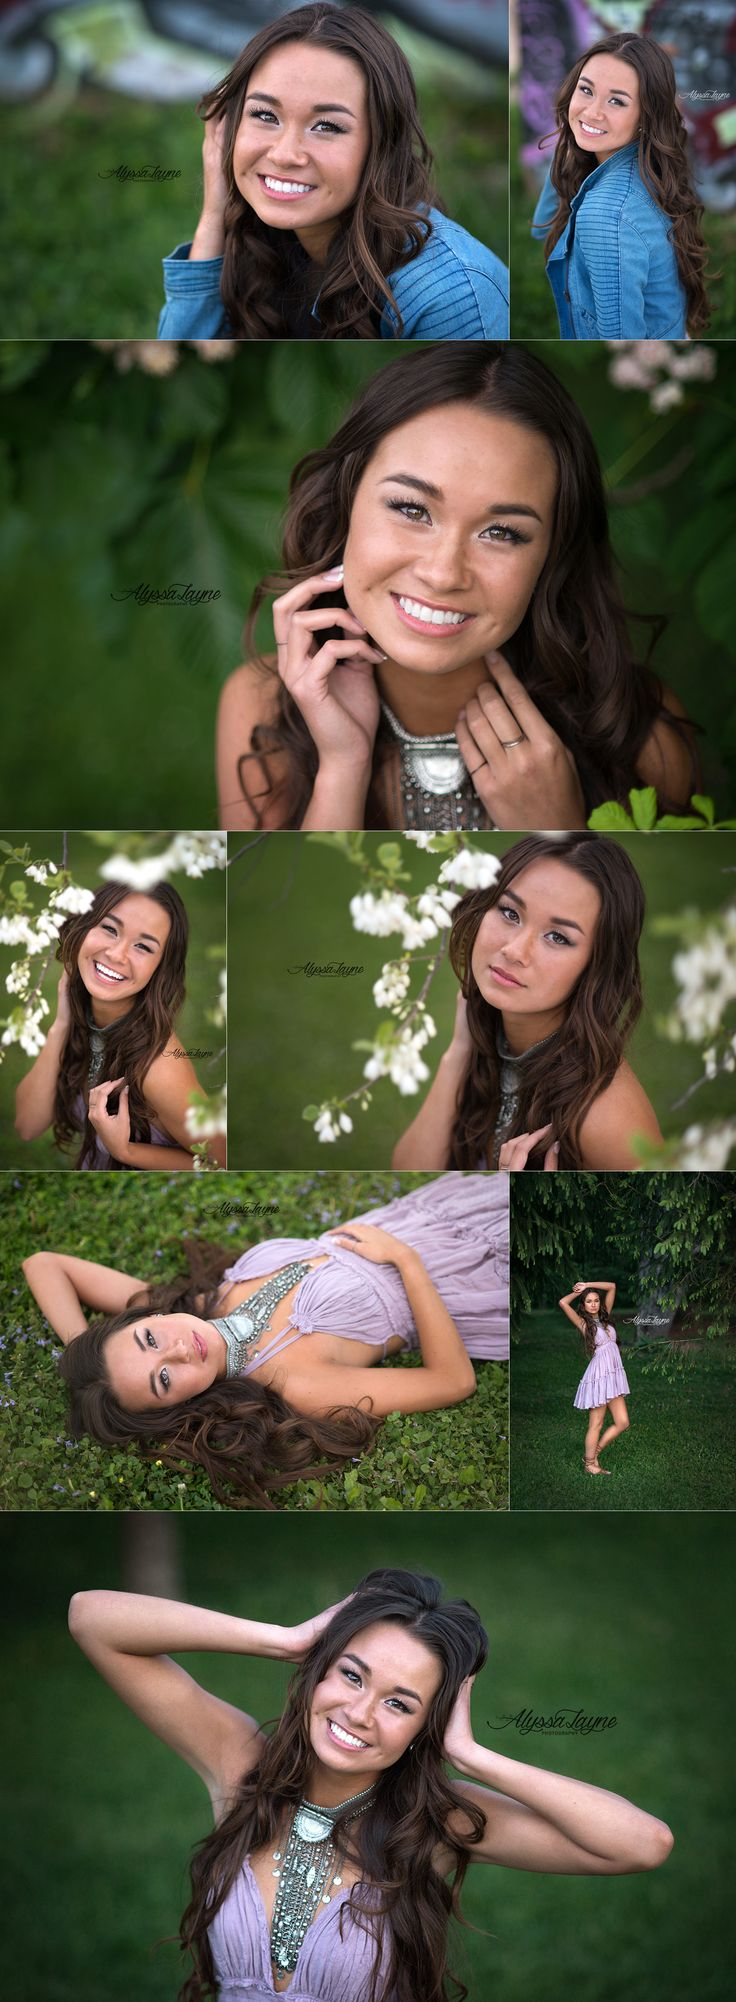 Justine | Senior Pictures | Senior Poses | Illinois Senior Photography | Alyssa Layne Photography